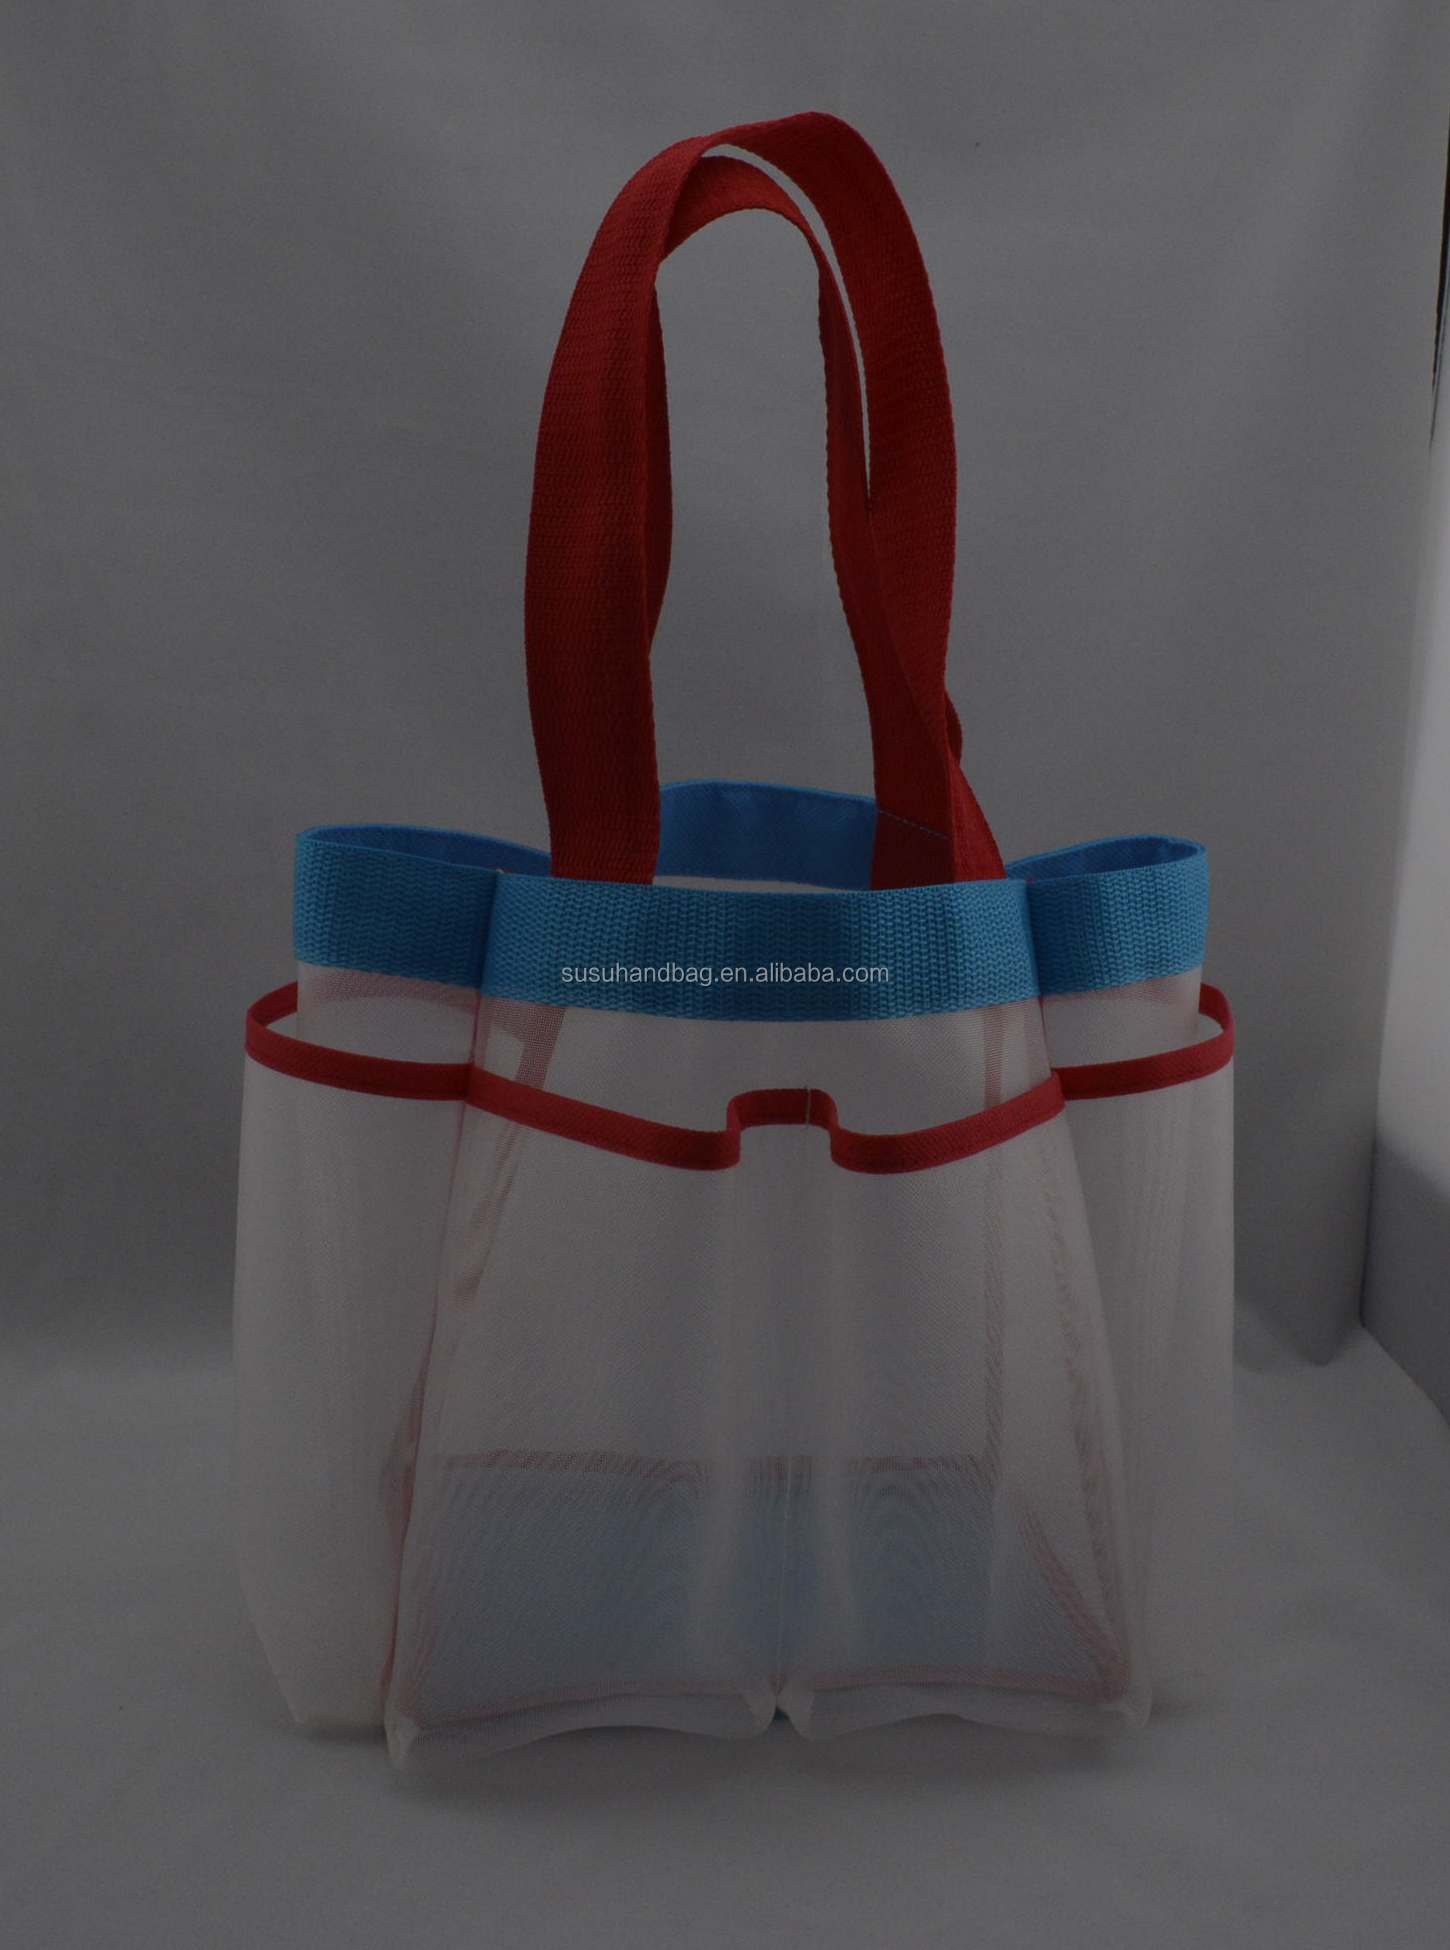 Handled Large Compartments Nylon Mesh Shower Tote Bag